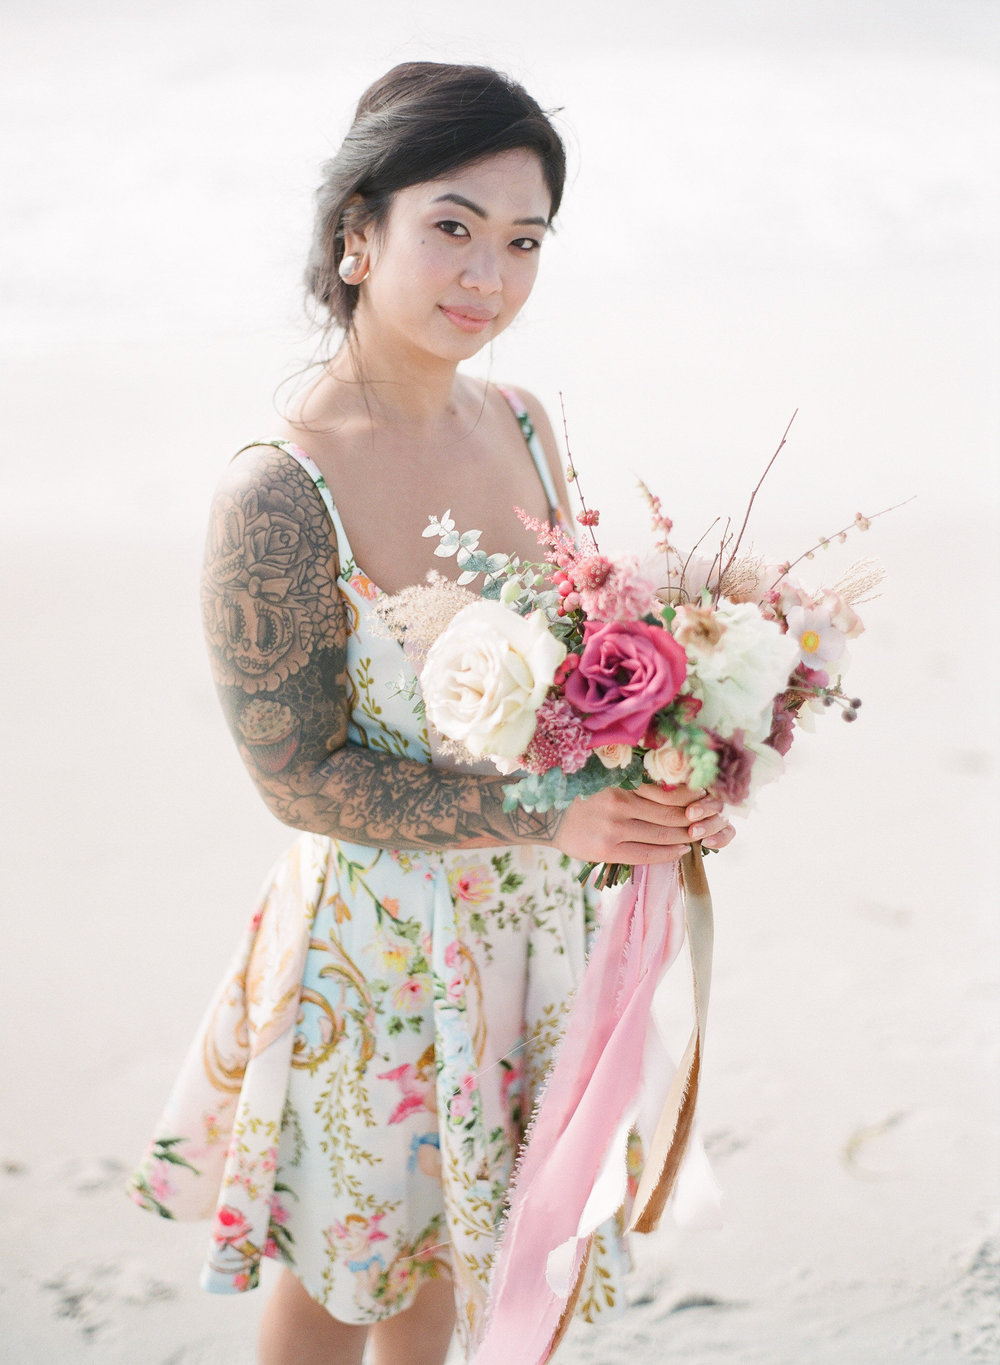 Beach Wedding Bridesmaid Dress and Bouquet (Photo: Ashley Noelle Edwards)